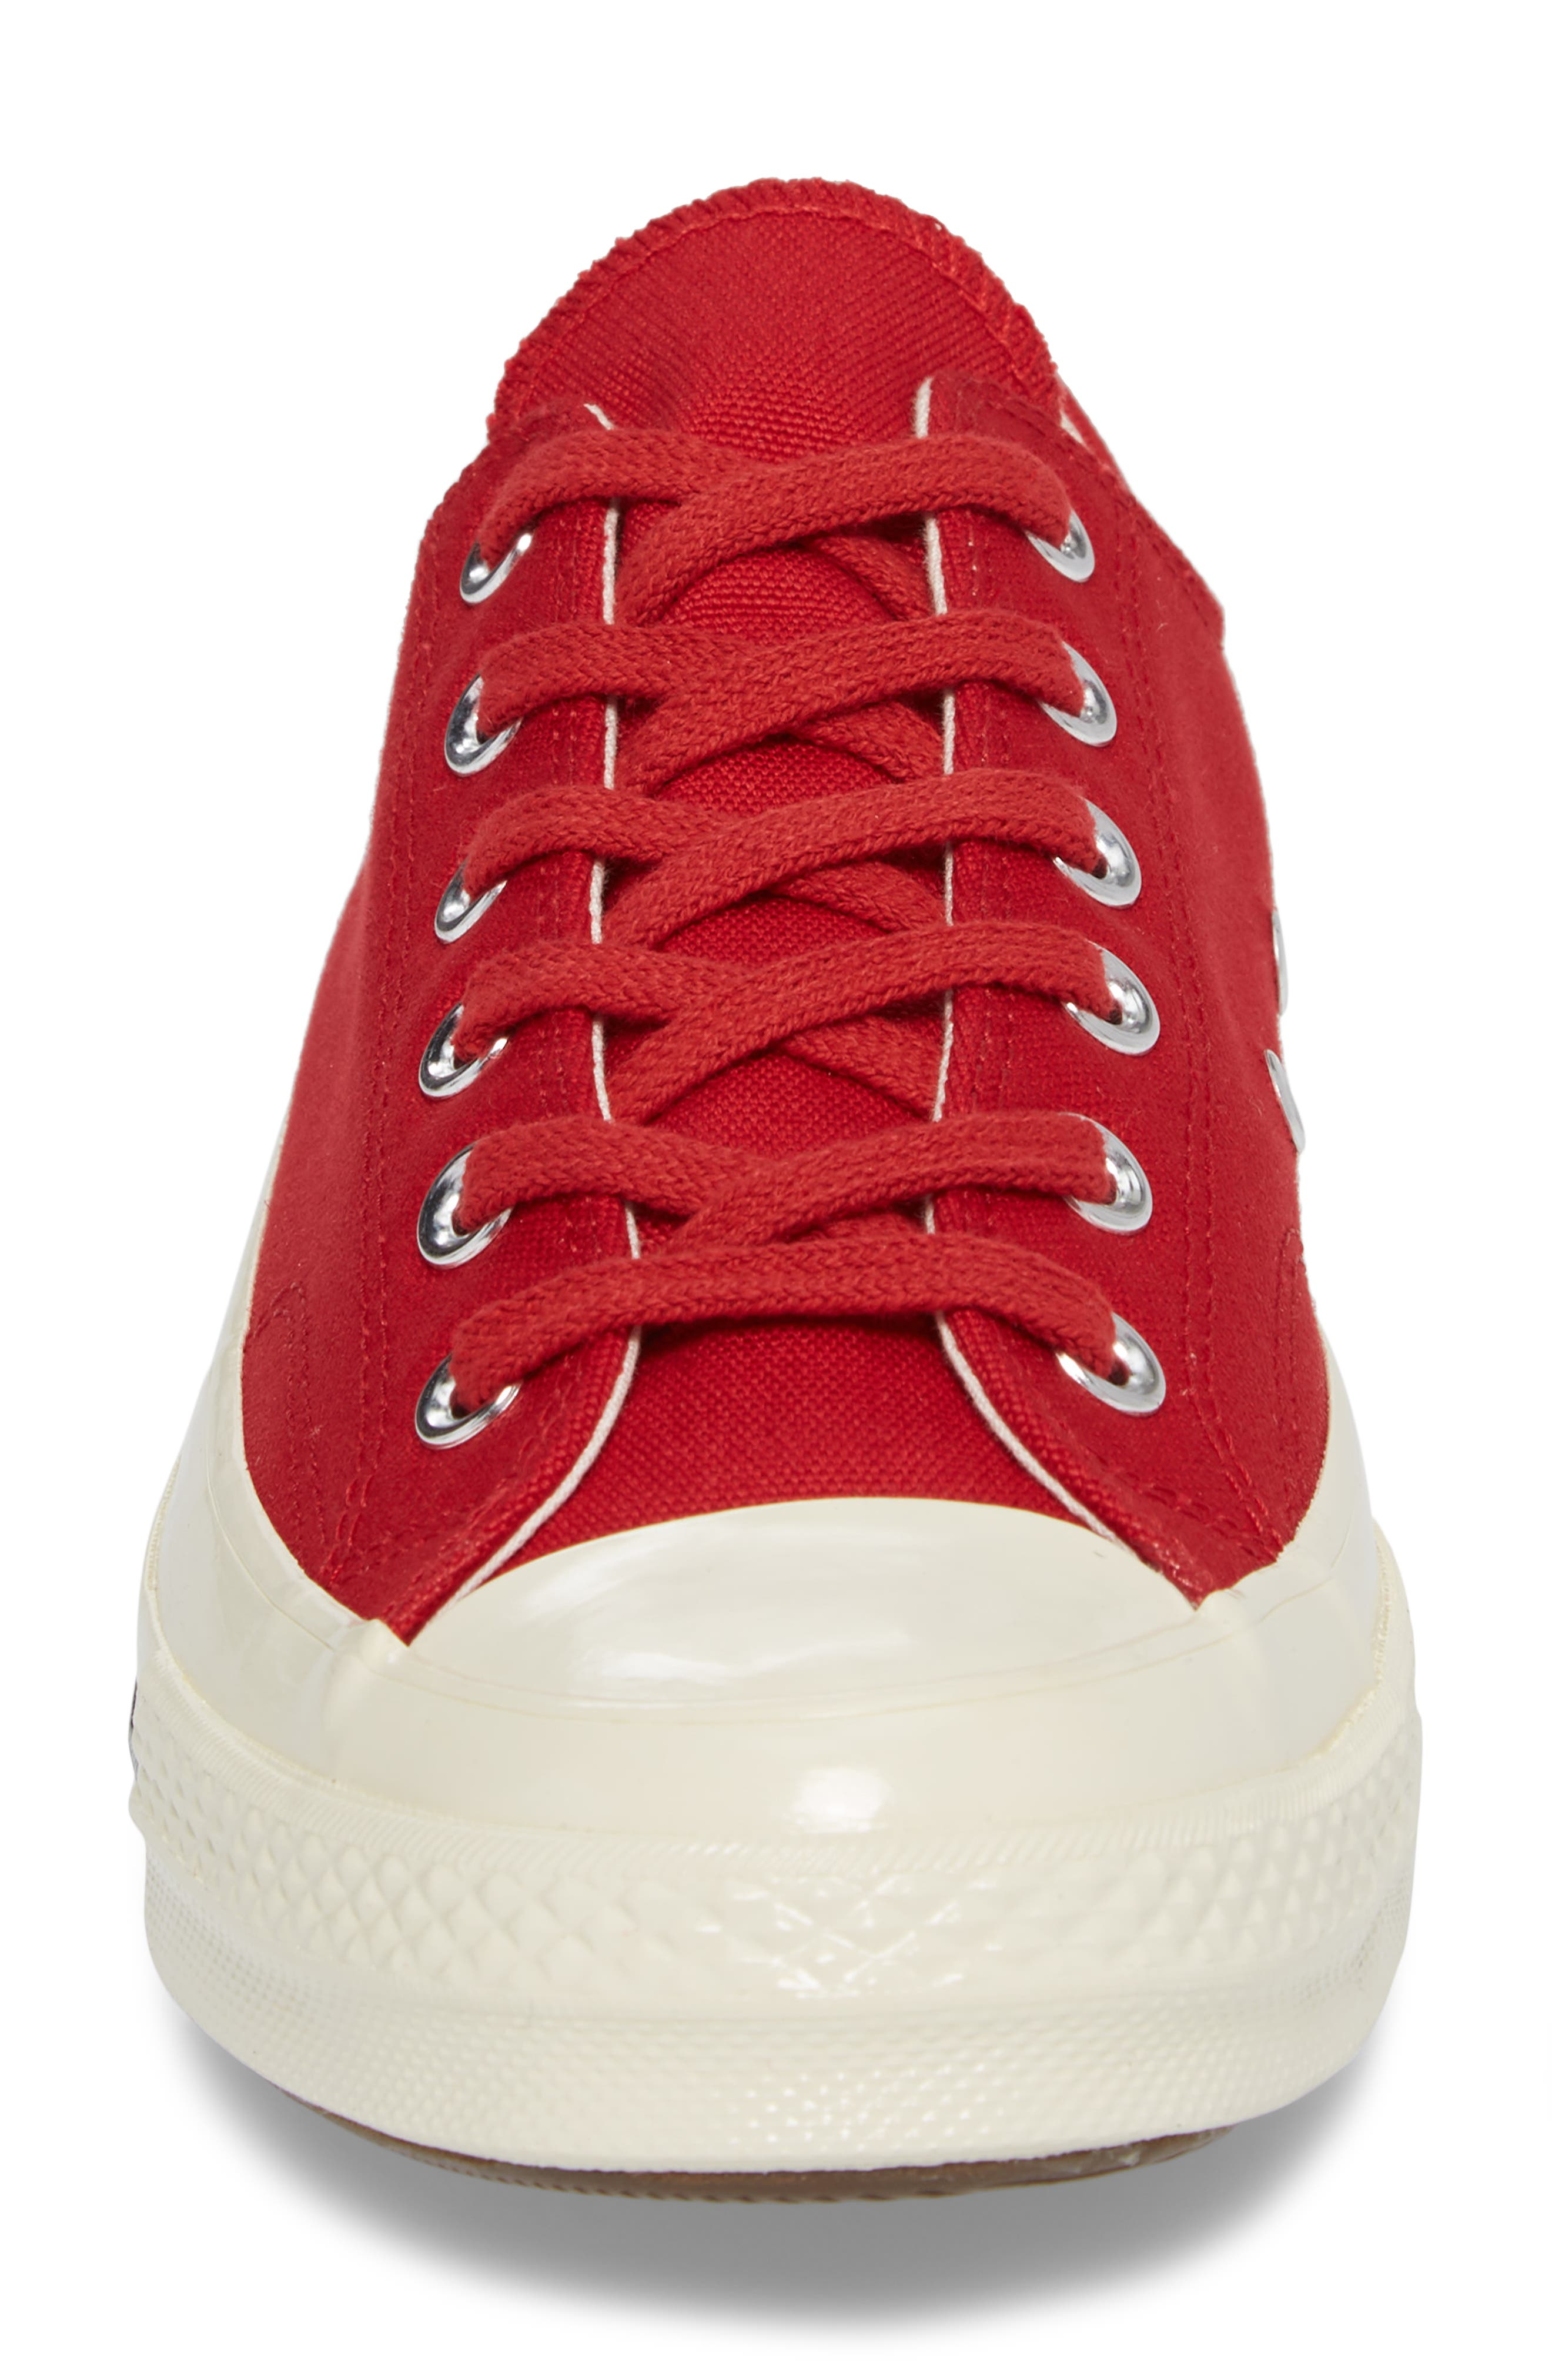 Chuck Taylor<sup>®</sup> All Star<sup>®</sup> '70s Heritage Low Top Sneaker,                             Alternate thumbnail 4, color,                             600